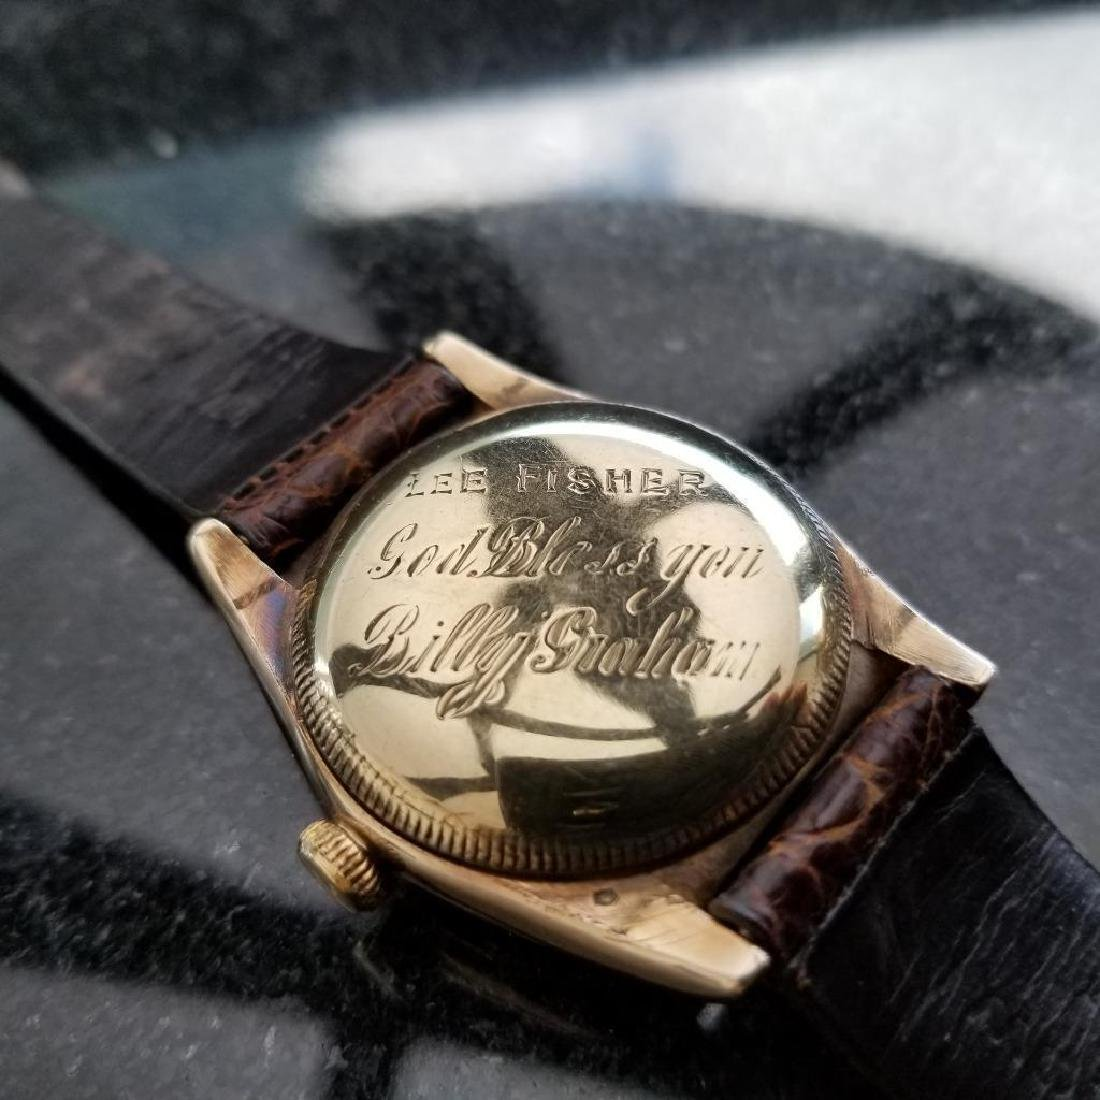 Rolex Signed Billy Graham to Lee Fisher 1950 Solid Gold - 4